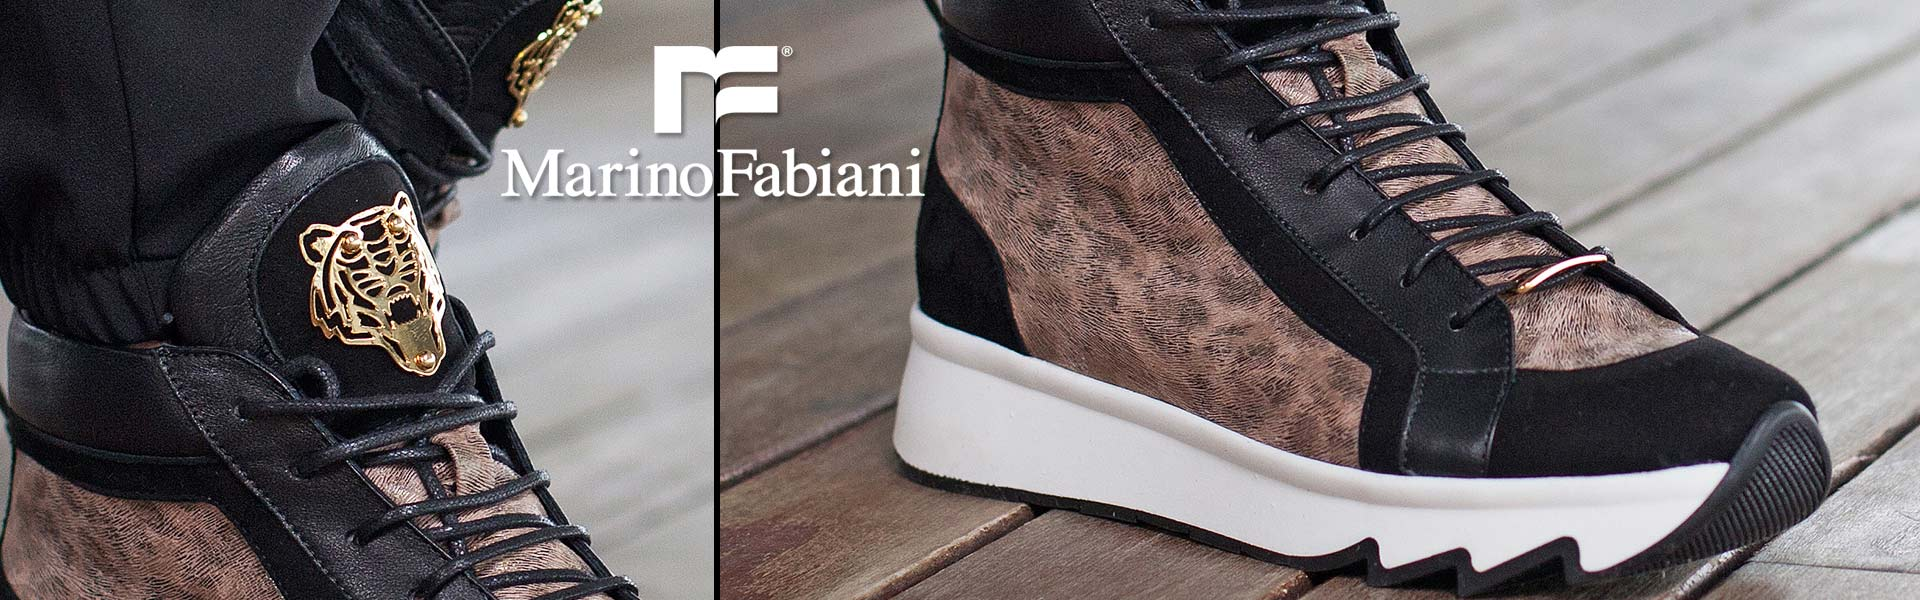 Privacy Policy >> ADVERTISING MARINO FABIANI Italian women's shoes luxury leather